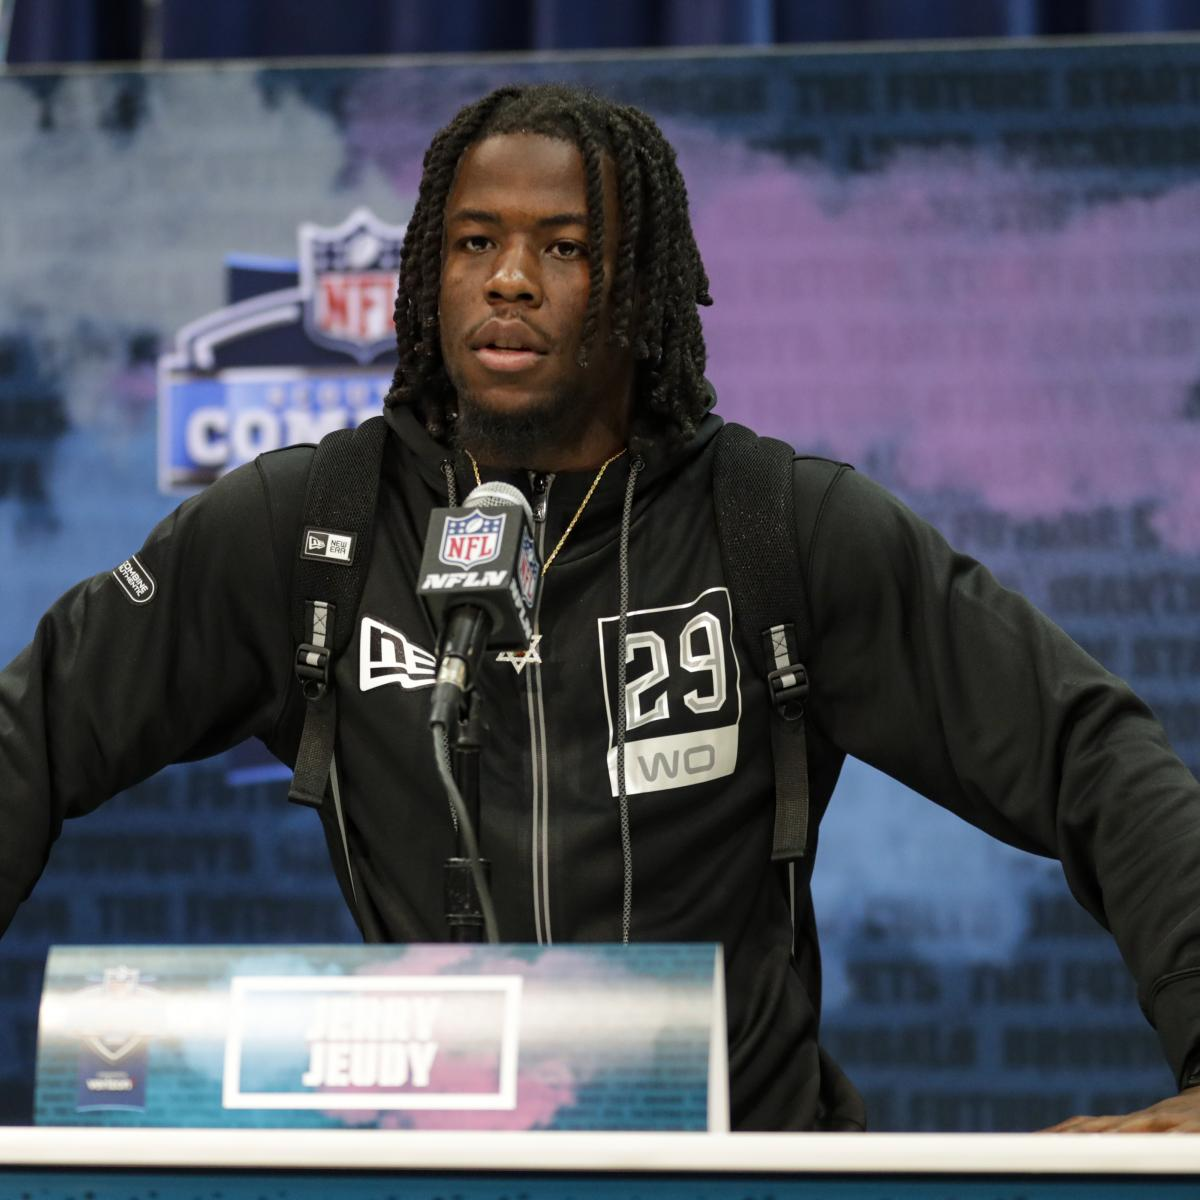 Jerry Jeudy Apologizes for Star of David Necklace Worn at 2020 NFL Combine